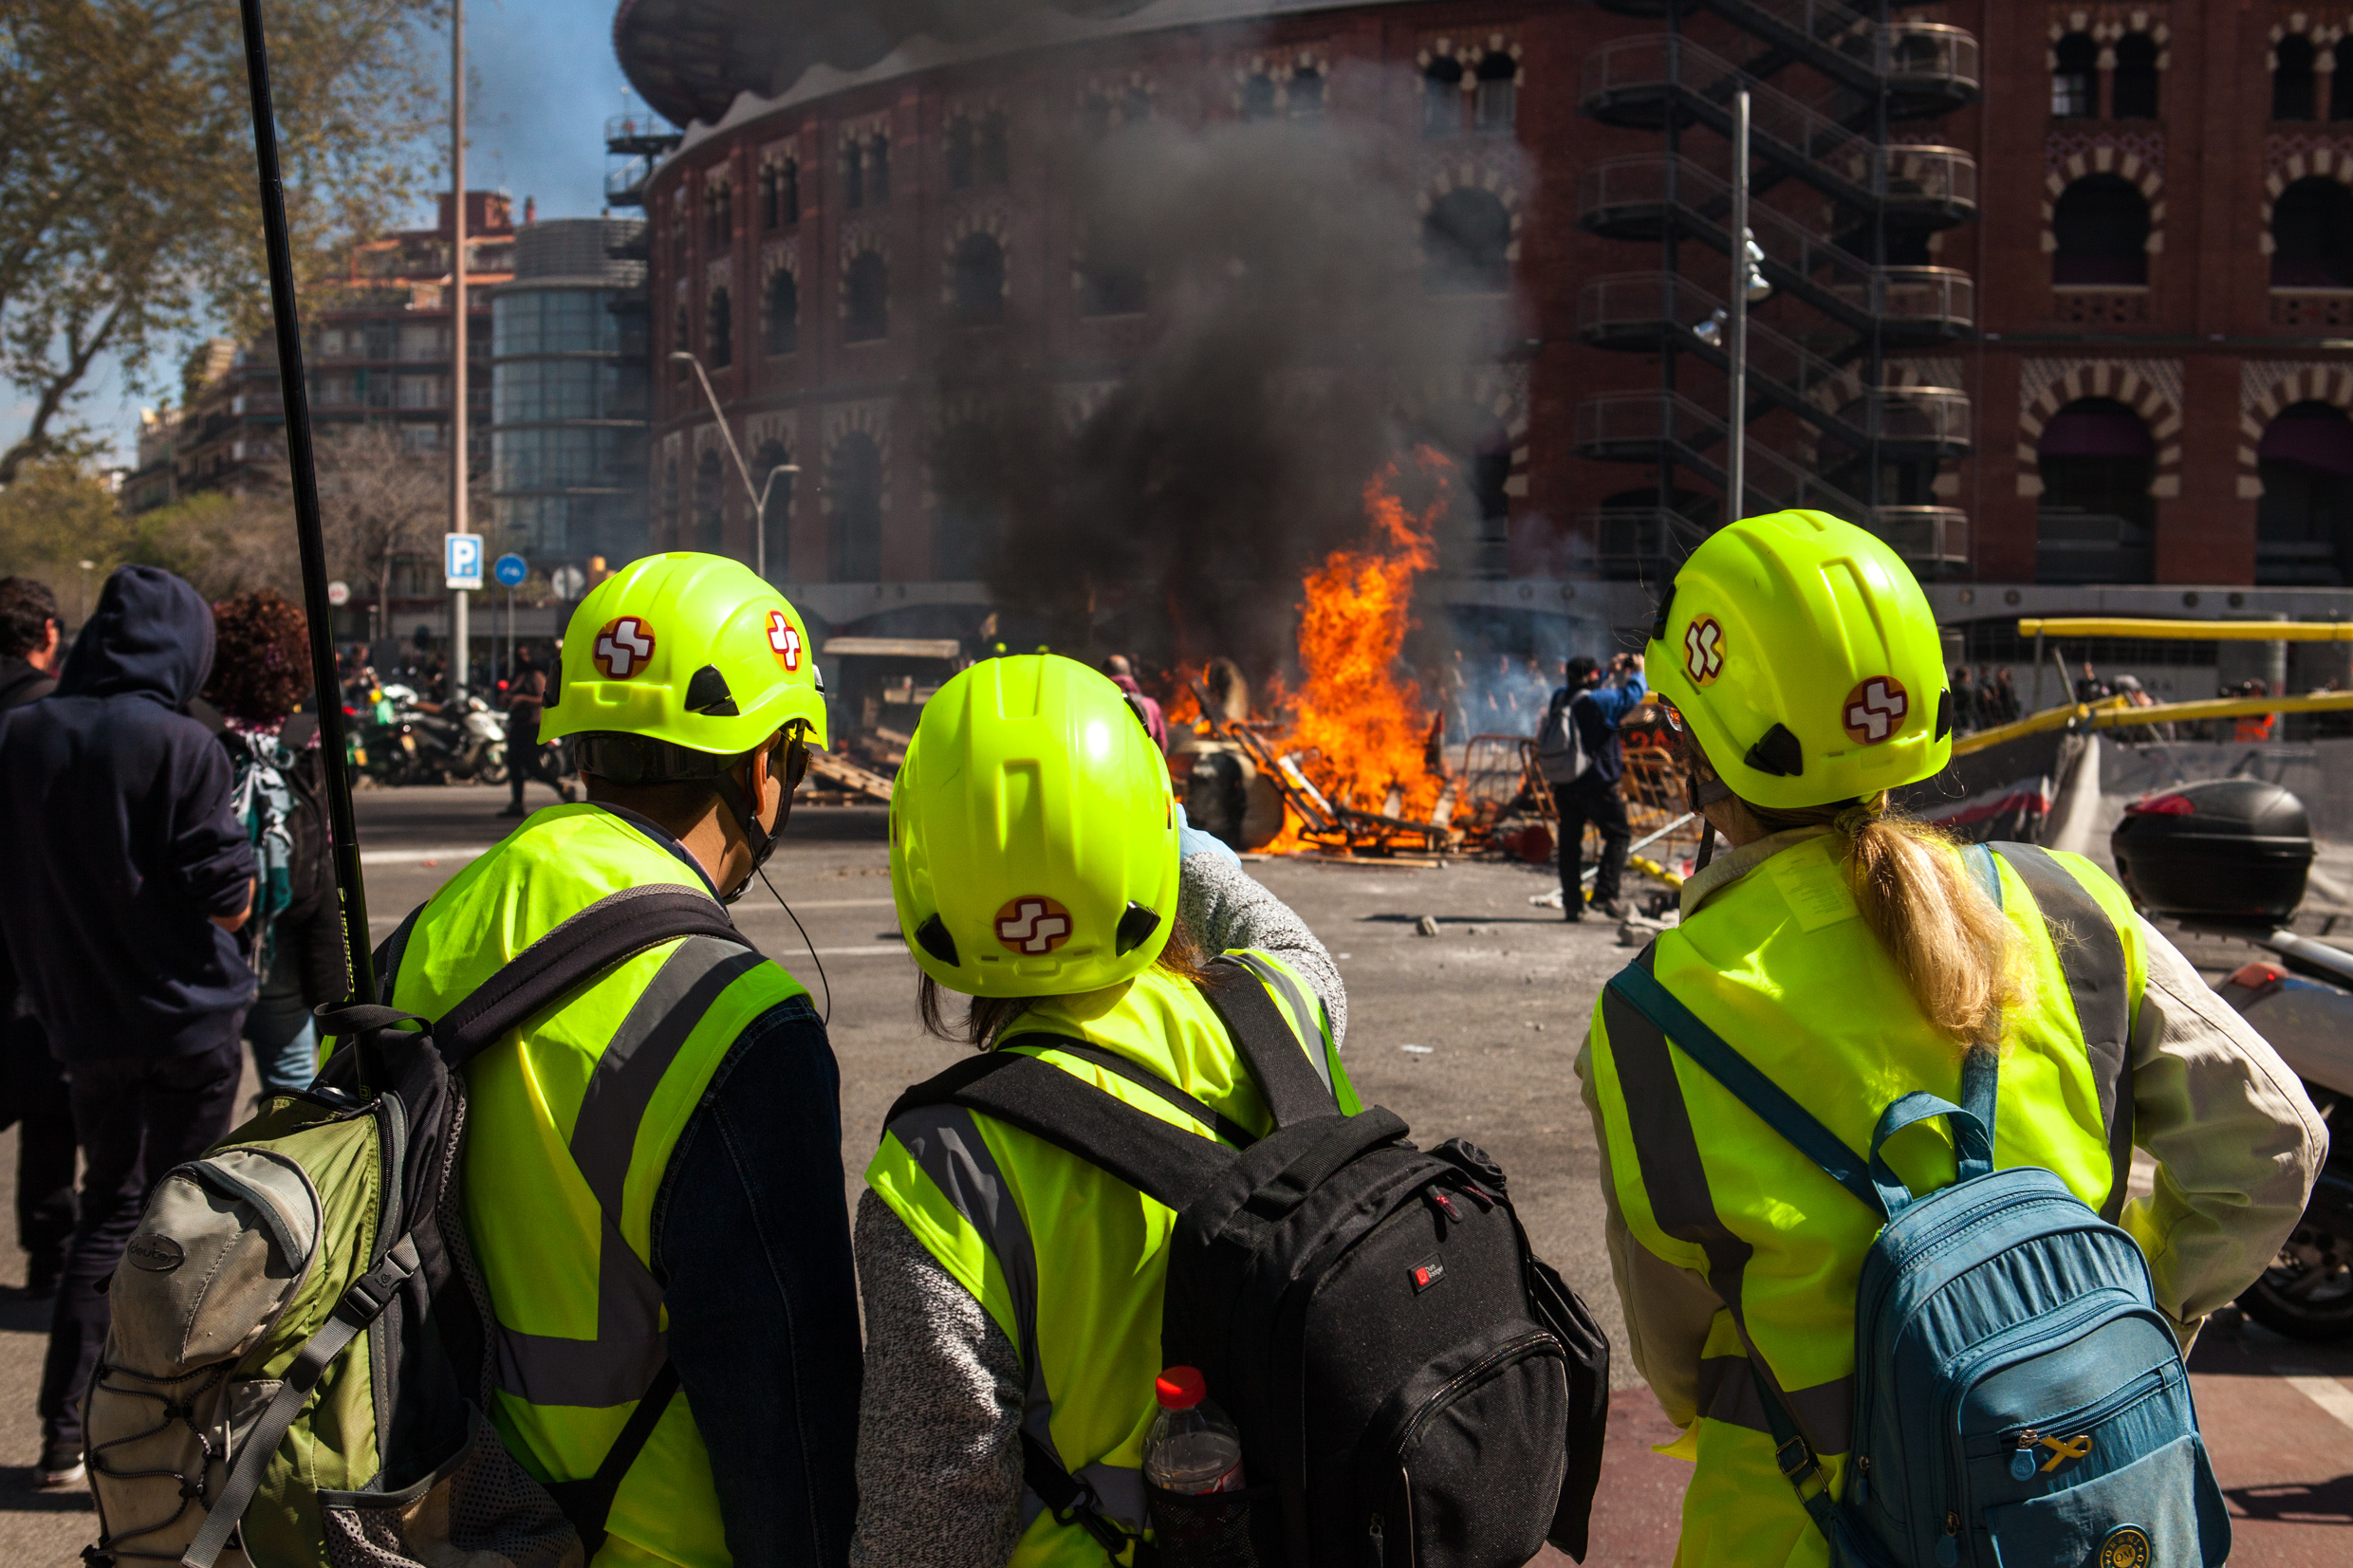 Street medic group supporting protest against VOX. Barcelona